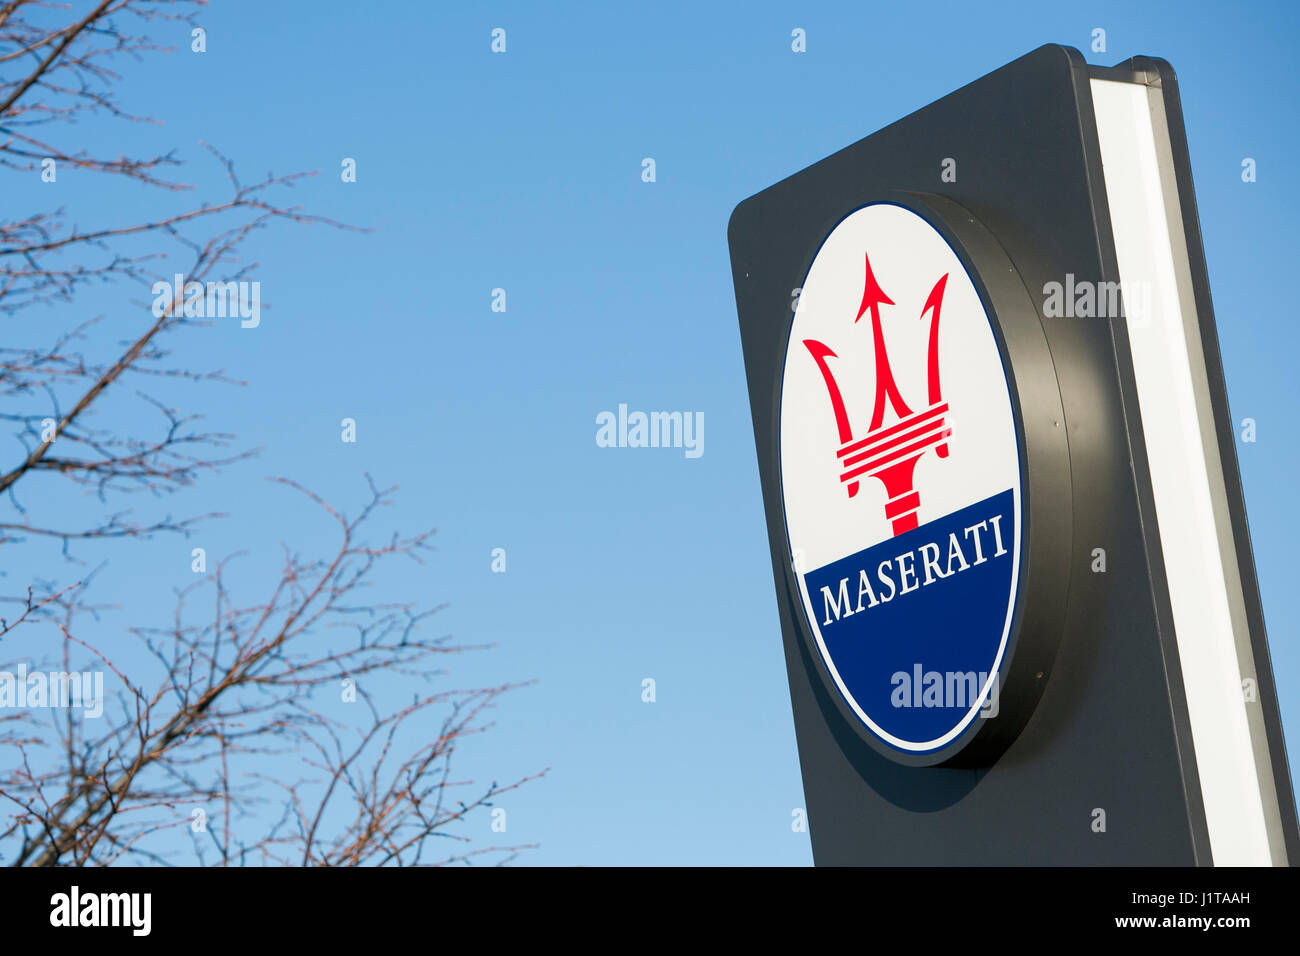 A logo sign outside of a Maserati car dealership in Oakville, ON, Canada on April 14, 2017. - Stock Image